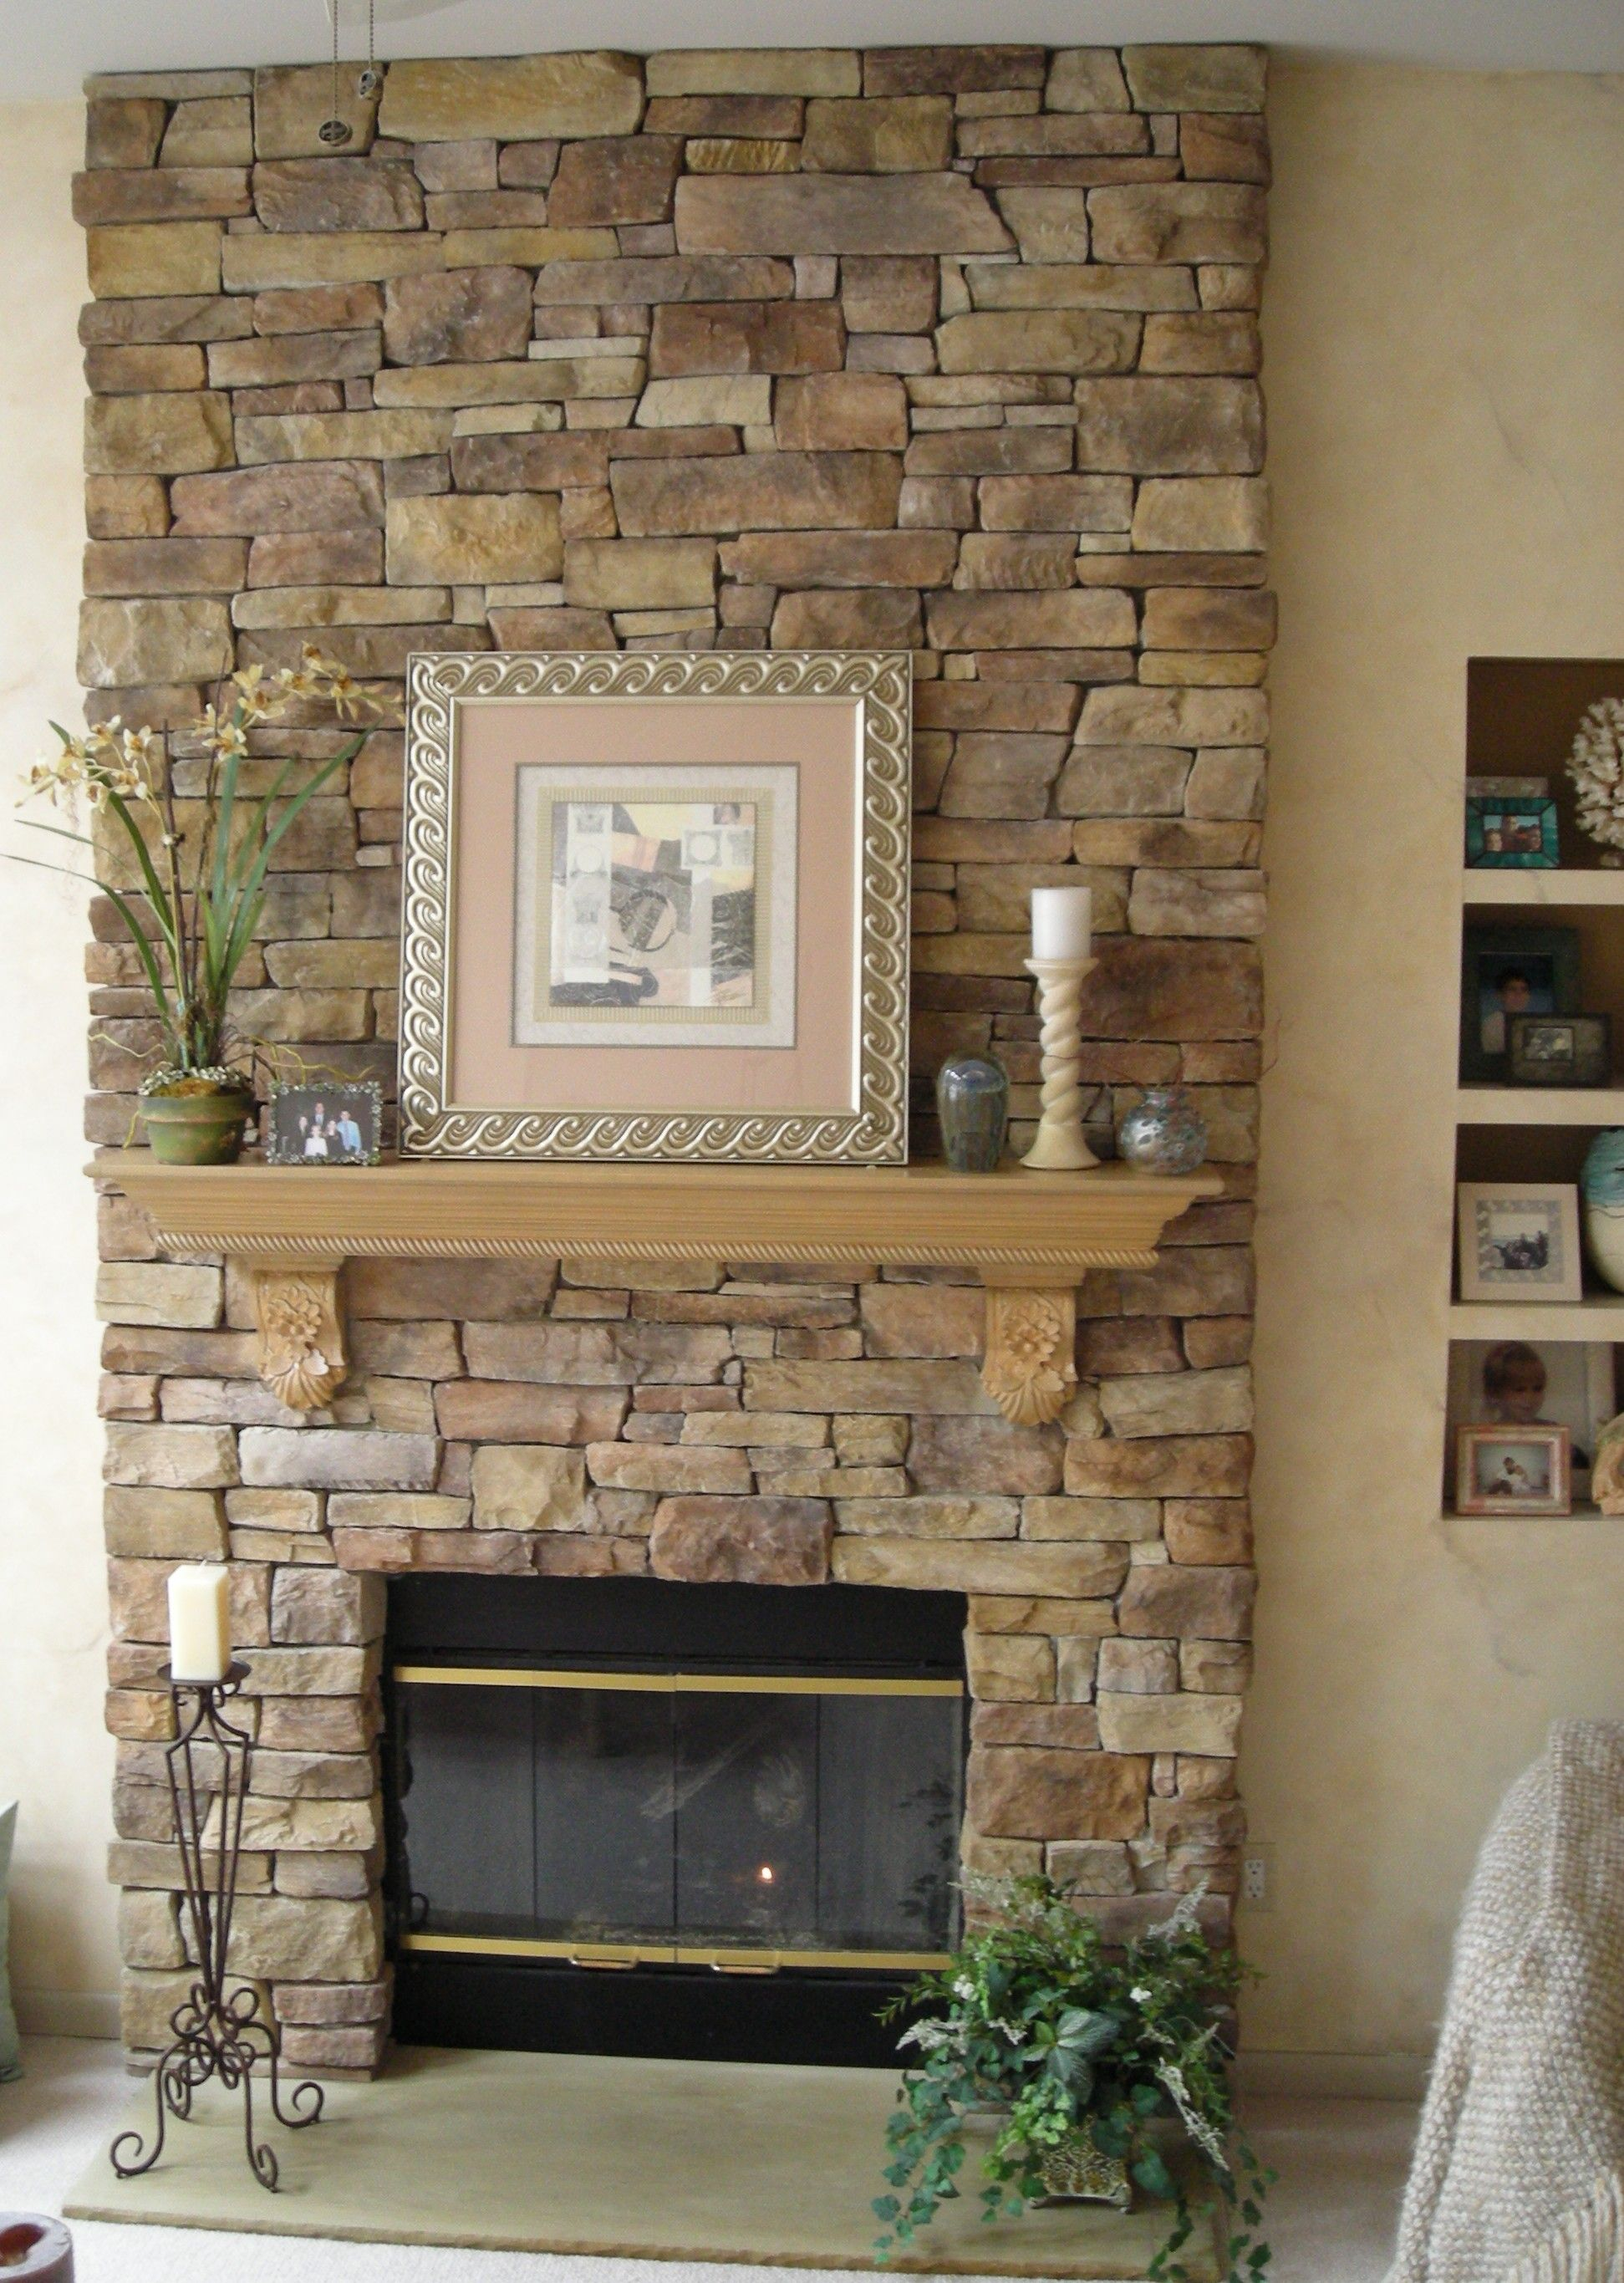 Interior stone fireplace specializes in faux stone veneer and natural stone design description - Images of stone fireplaces ...